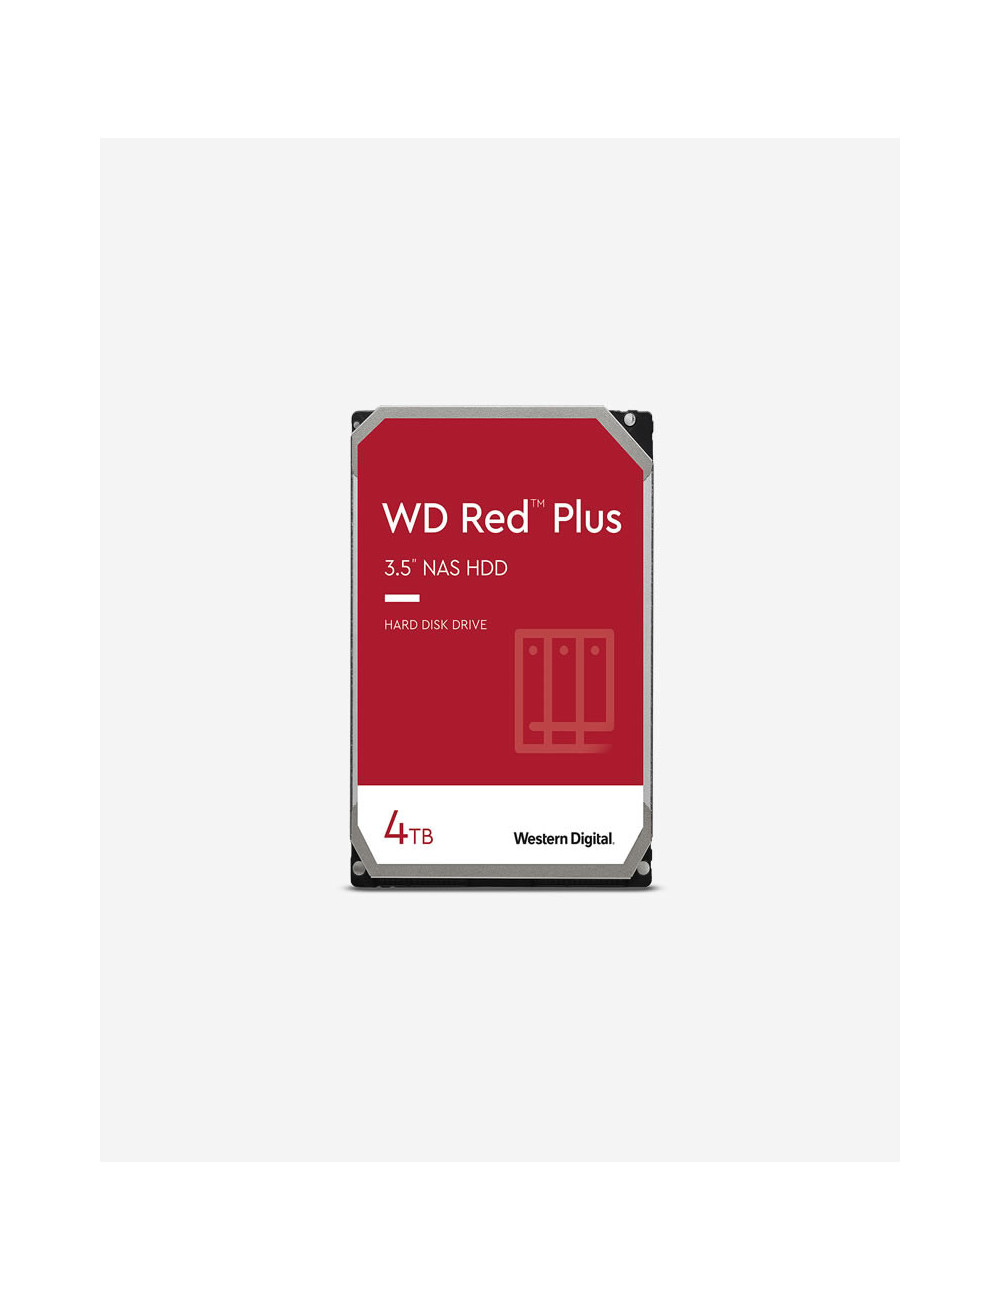 WD RED PLUS 4TB SATA drive for NAS